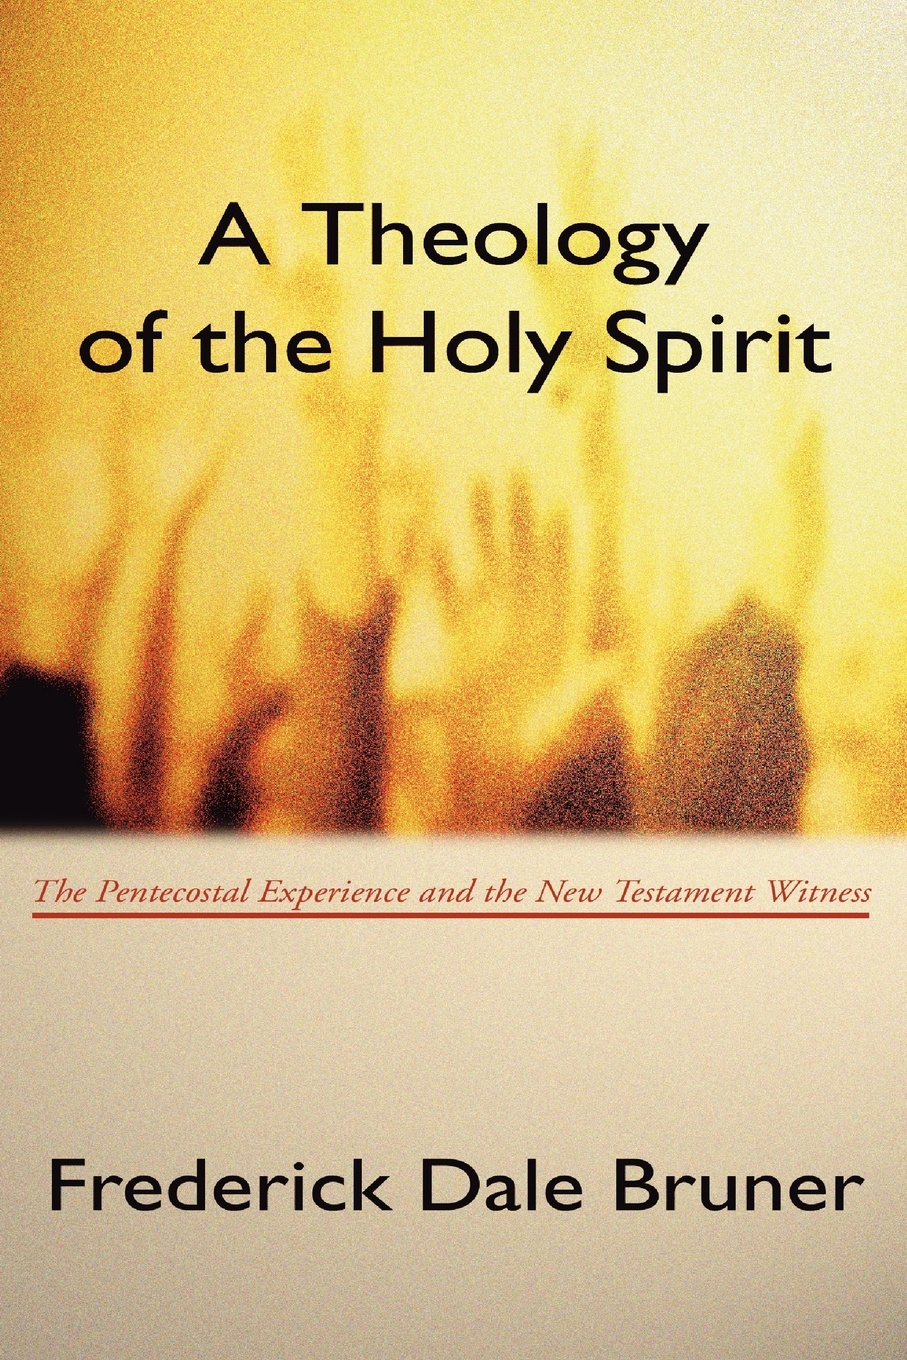 Frederick D. Bruner Theology of the Holy Spirit. The Pentecostal Experience and the New Testament Witness irene bonney faulkes d d the holy spirit came